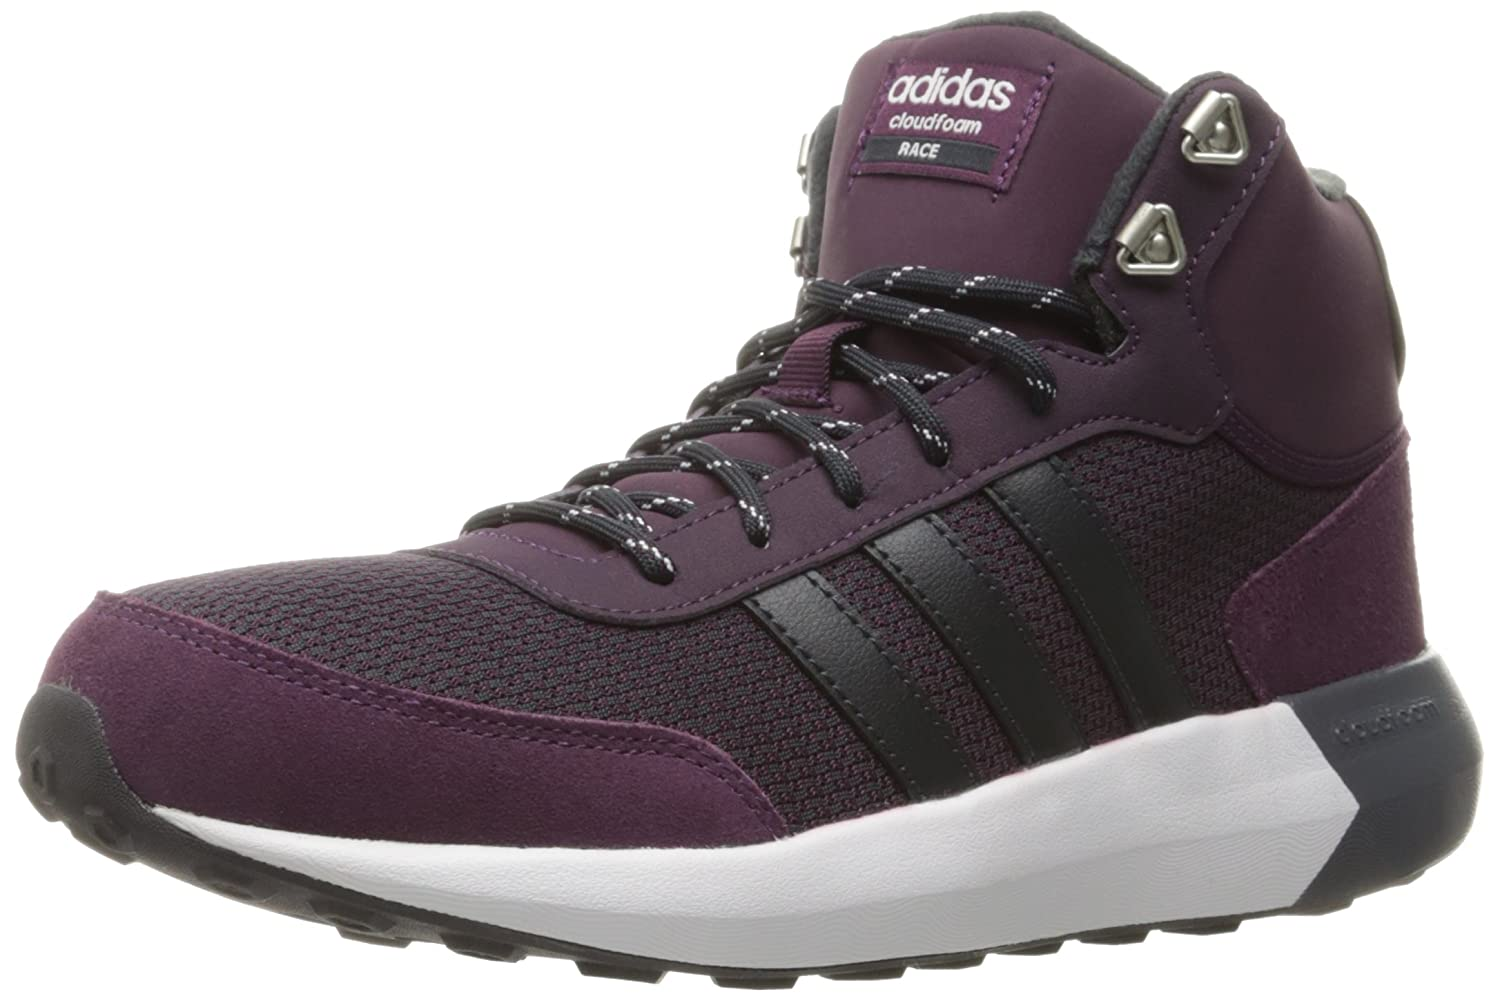 adidas NEO Women's Cloudfoam Race Wtr Mid W Running Shoe